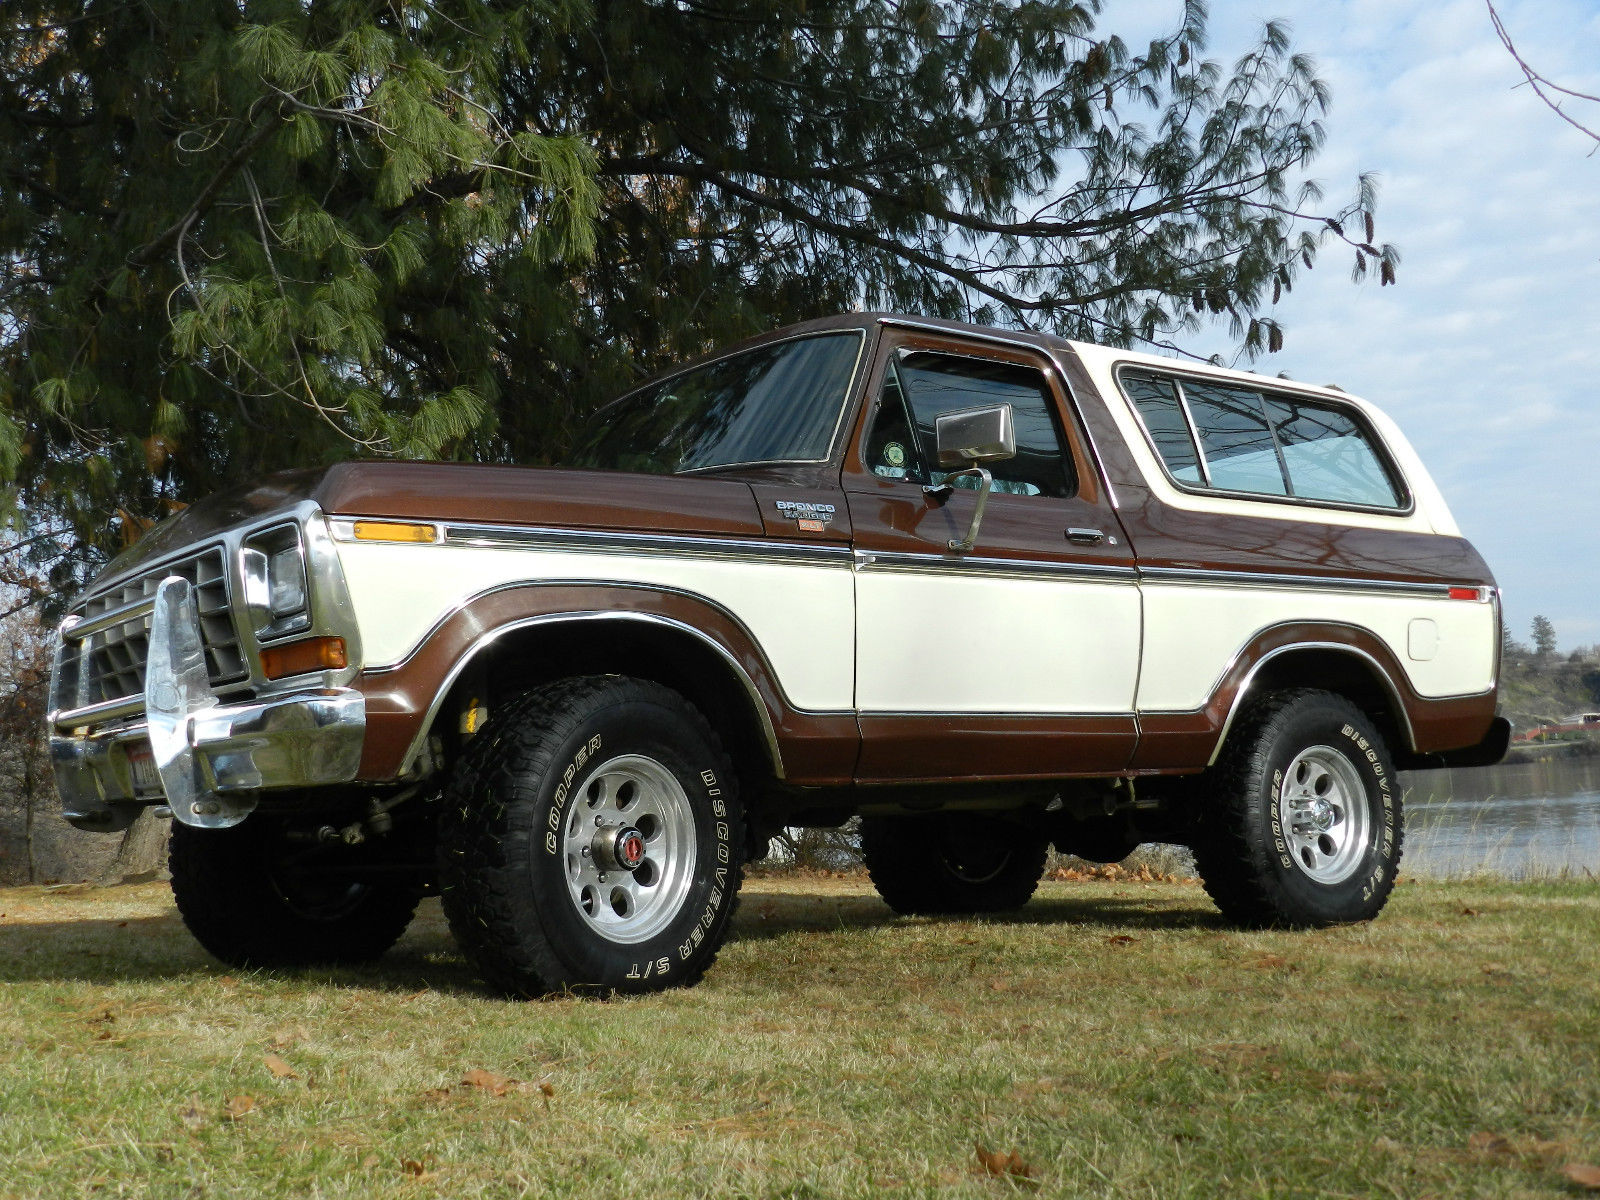 ford f150 bronco electric furnace factorio 1979 4x4 xlt rare orignal paint and body